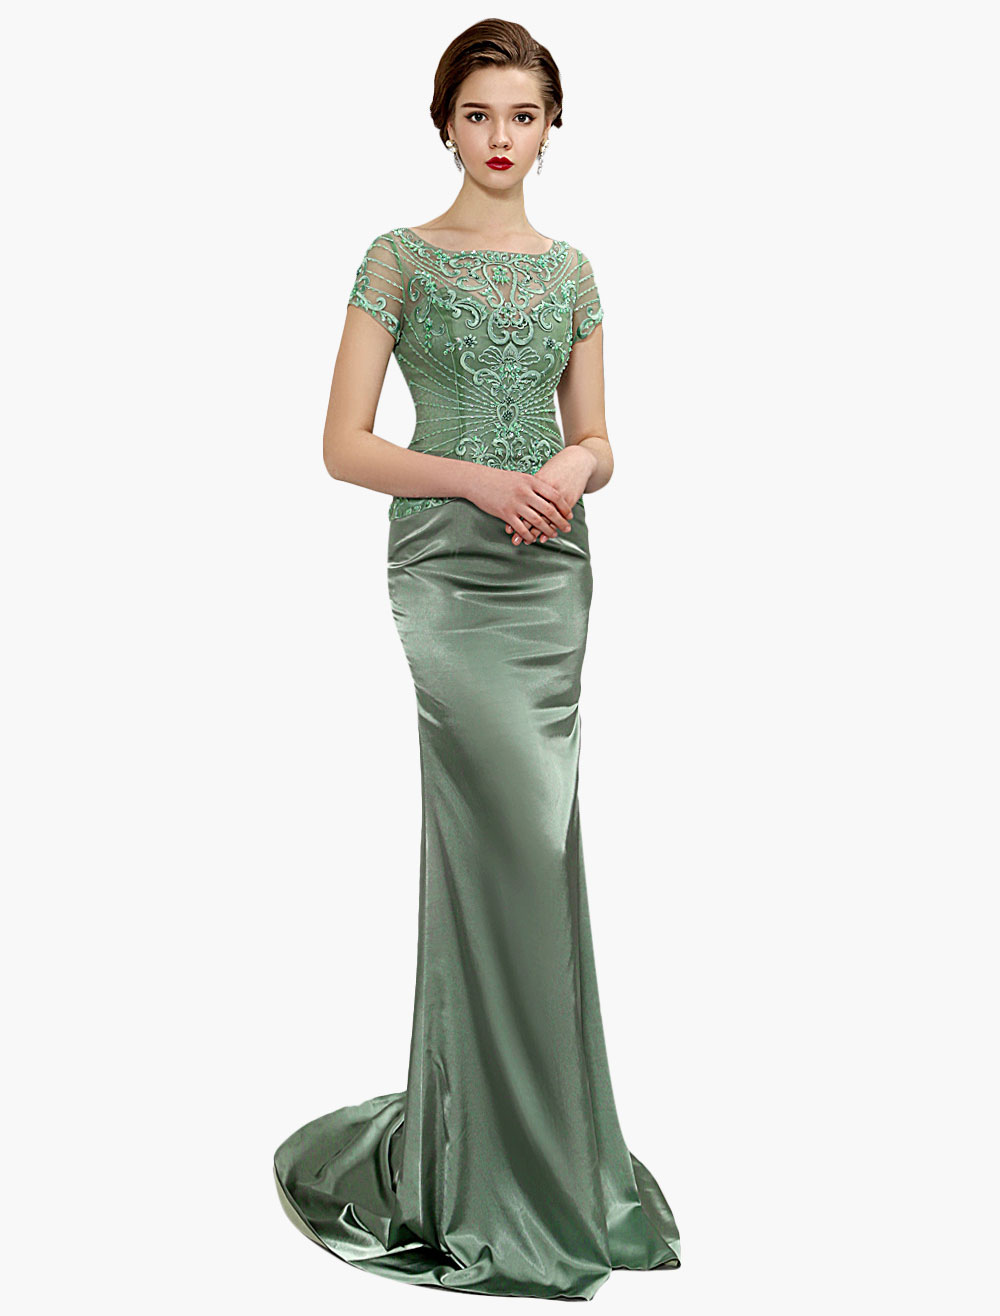 Sage Green Mother Of Bride Dress Mermaid Beading Embroidered Illusion Back Wedding Party Dress With Train